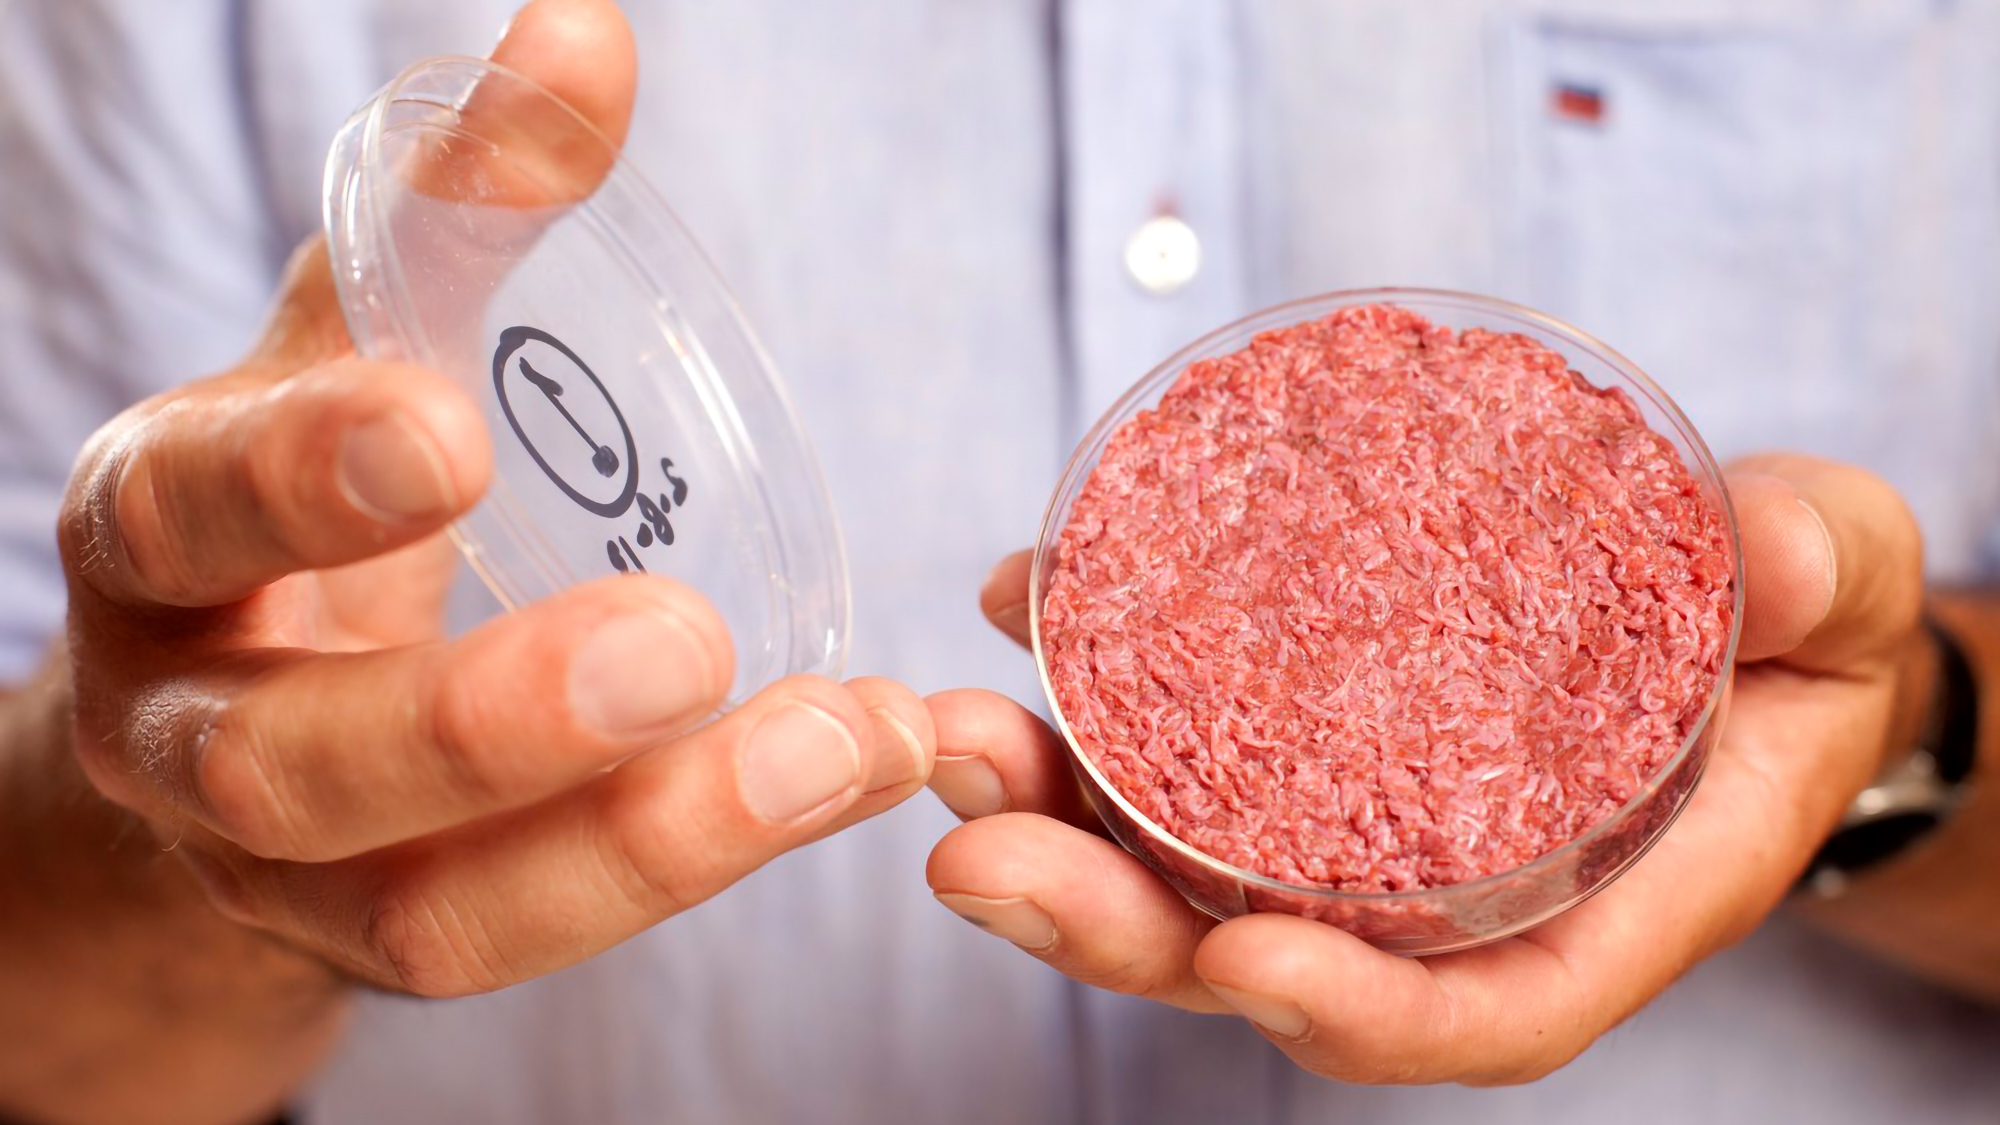 EDITORIAL USE ONLY. 